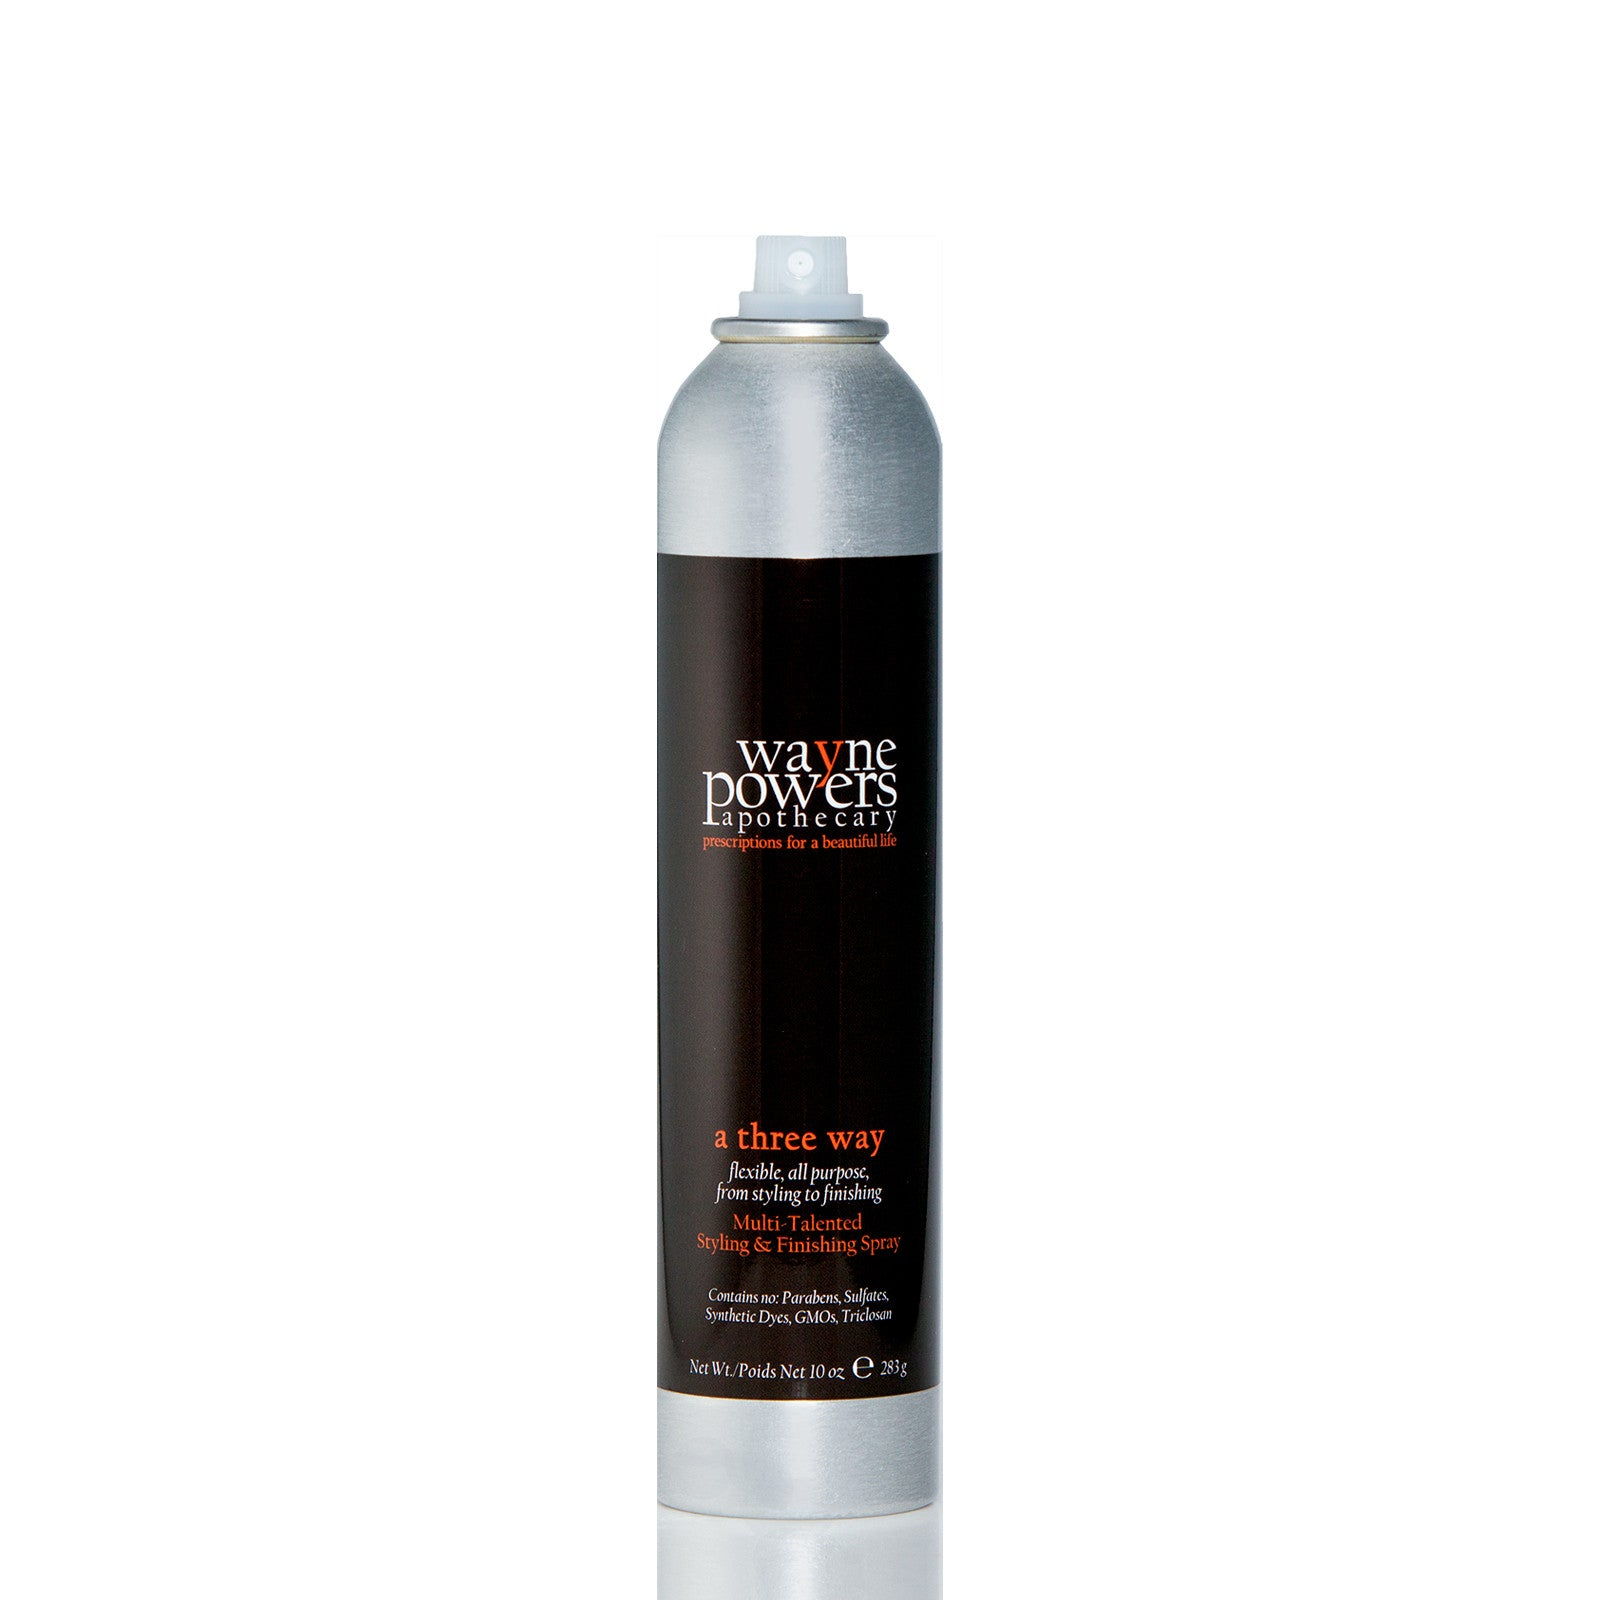 A Three Way Multi-Talented Styling & Finishing Spray by Wayne Powers Apothecary